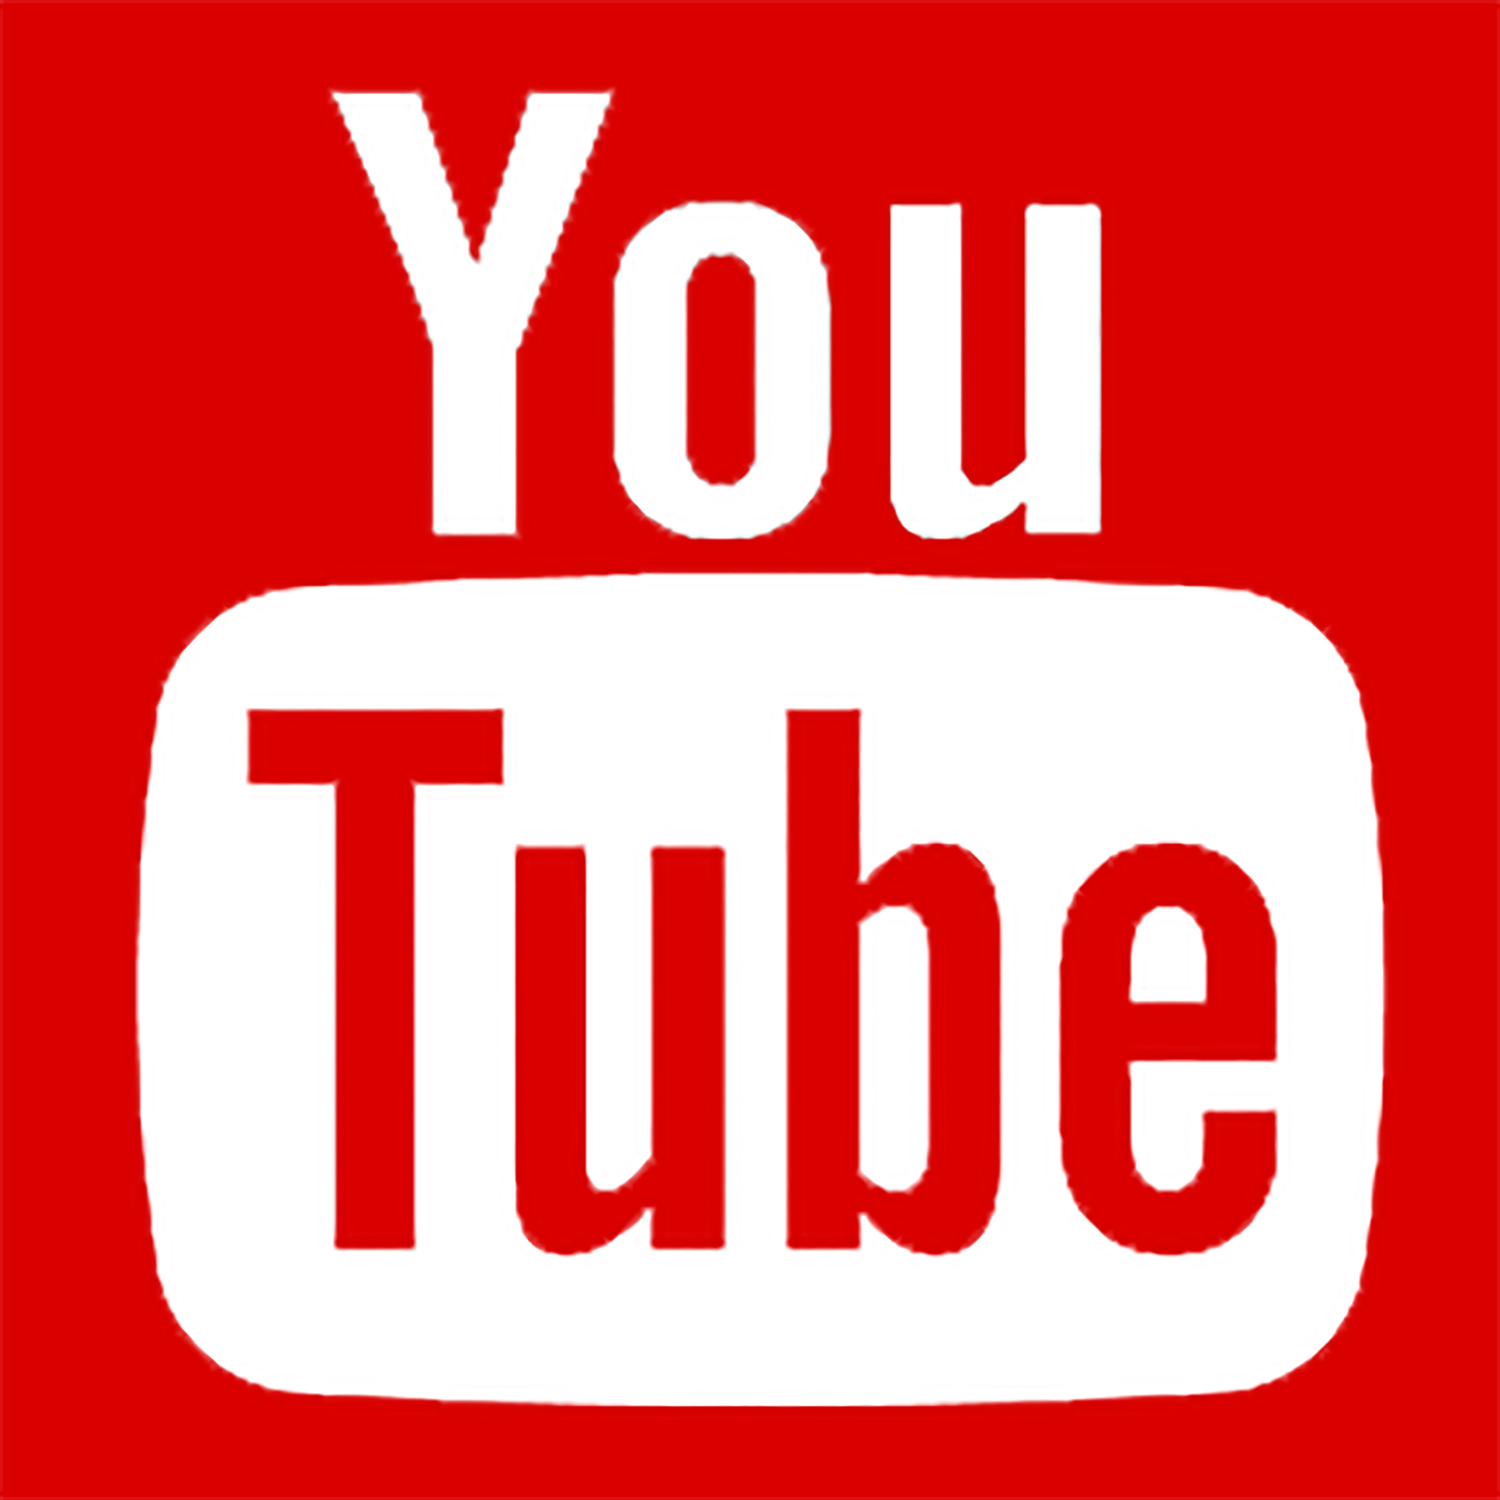 1500x1500 Youtube Logo, Png, Youtube Vectors, Yt Button [2018]